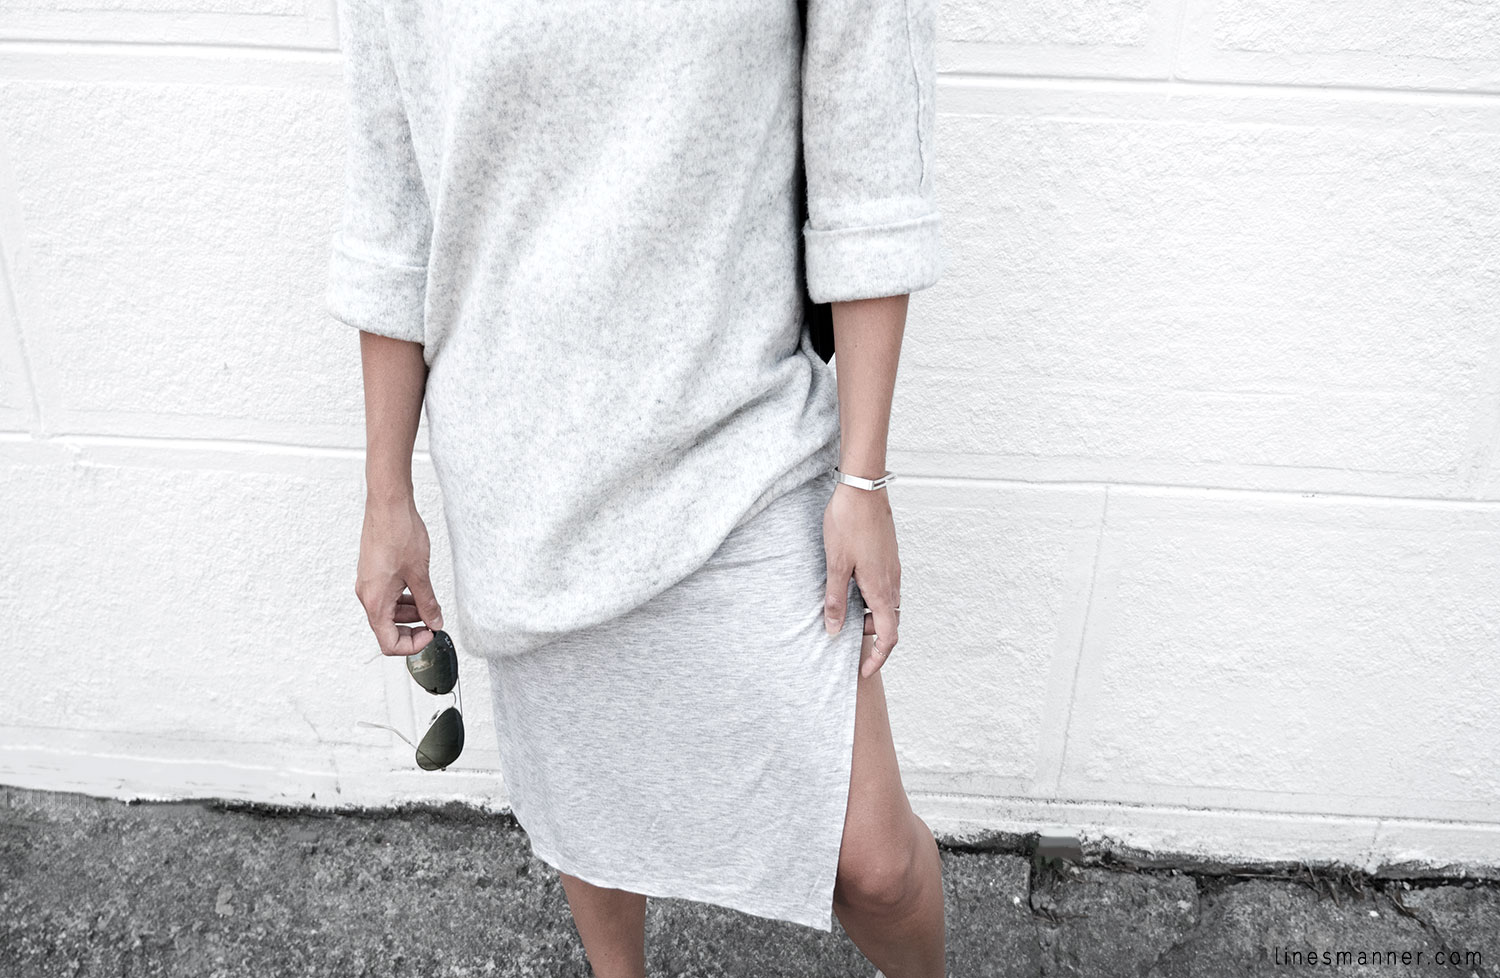 Lines-Manner-Fashion-Collaboration-The_Demeler-Monochrome-Grey_on_Grey-Fresh-Brightly-Outfit-Simplicity-Details-Trend-Minimalist-Flowy-Layering-Sleeves-Sweater_Dress-17